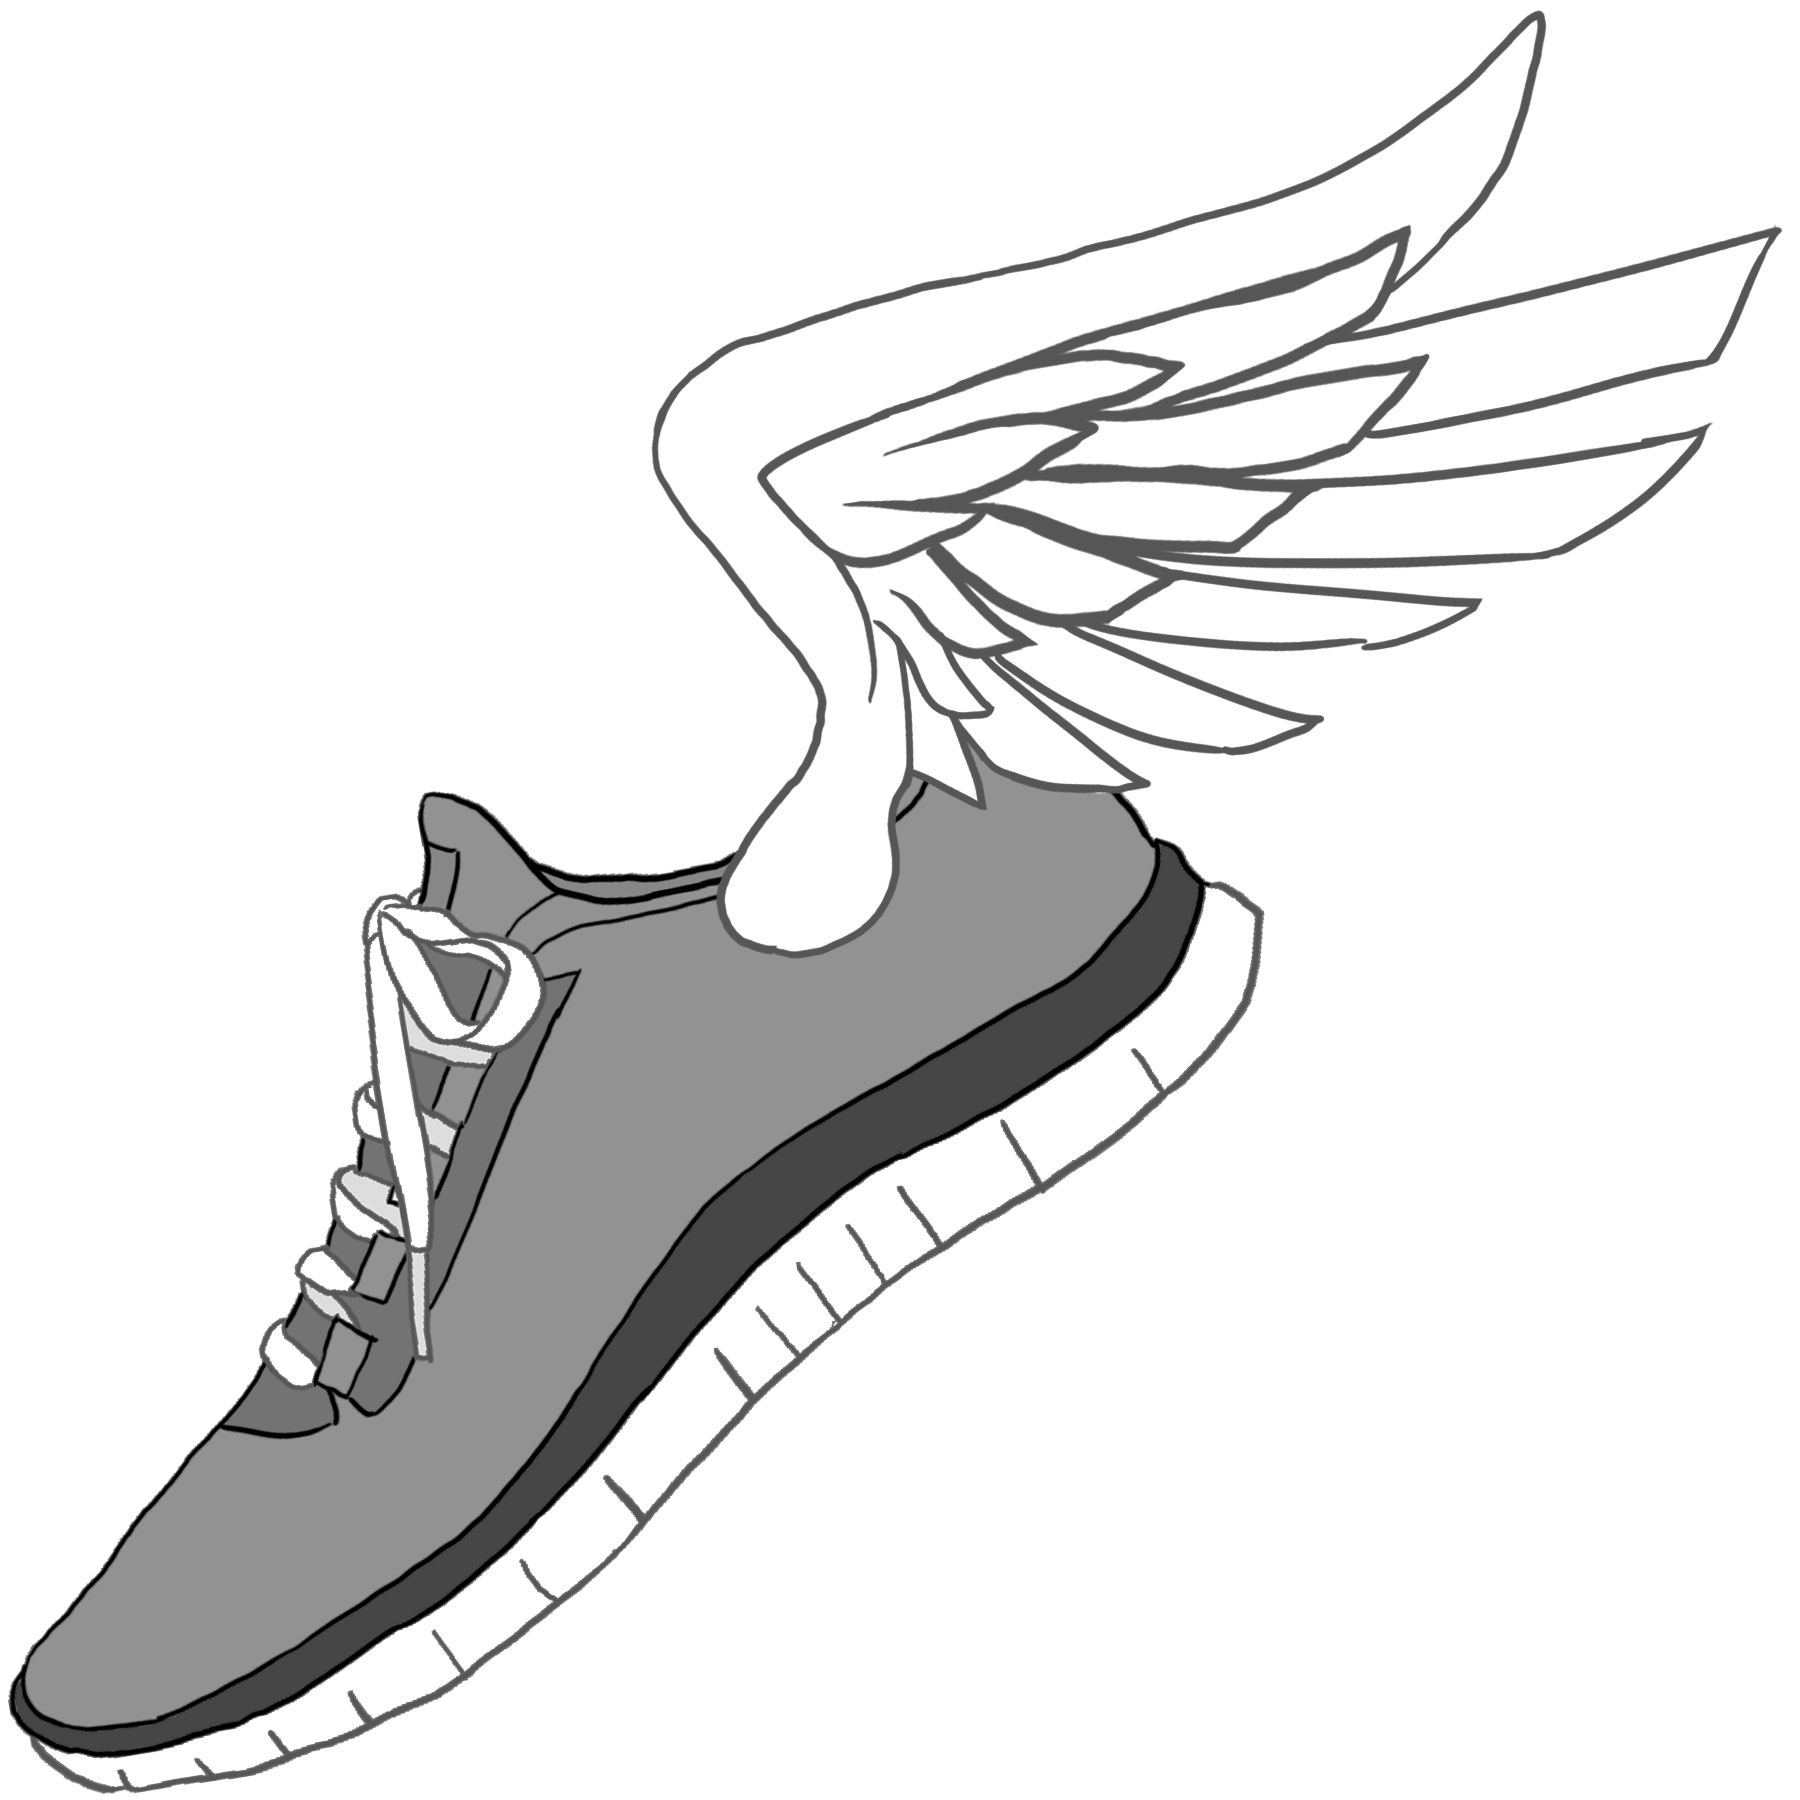 1800x1800 Track Shoe With Wings 6 Clip Art Image